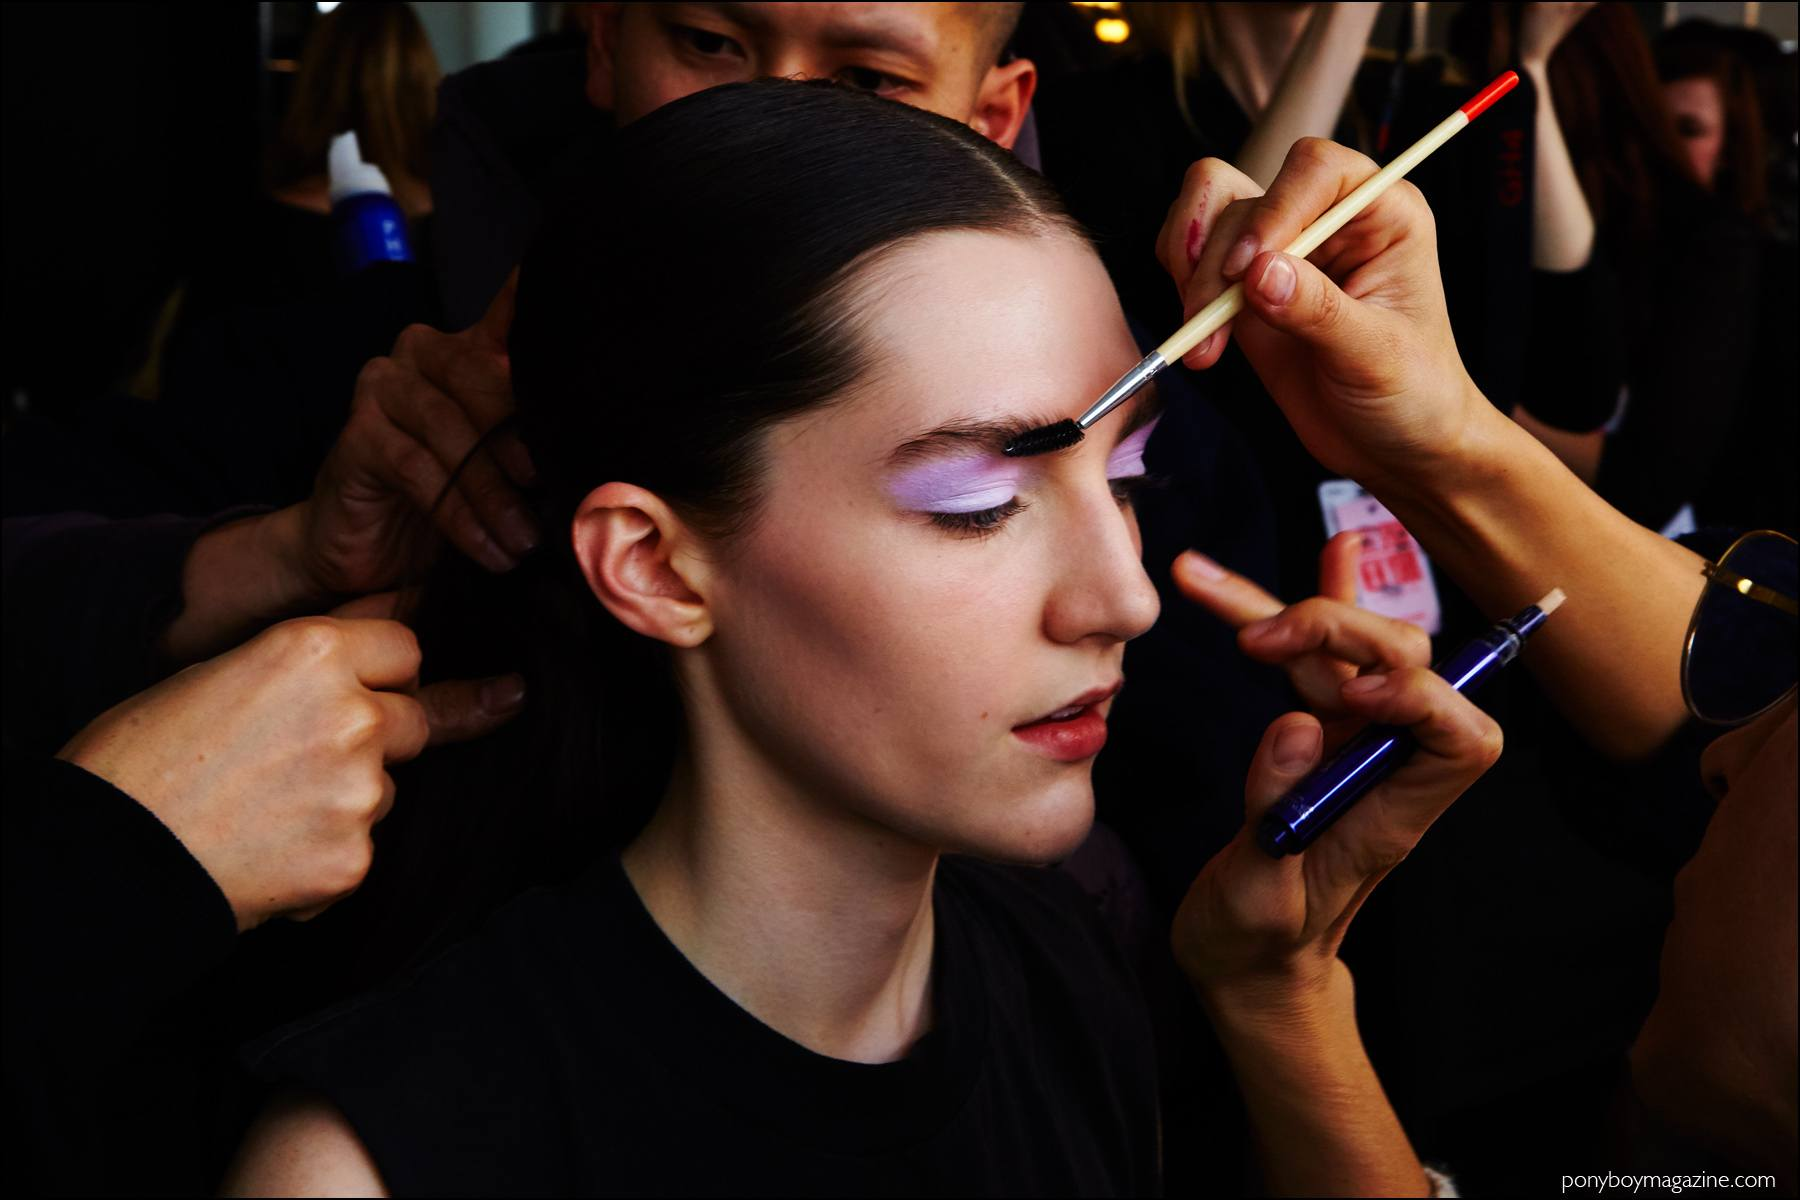 Brunette model Danielle Dorchester photographed in makeup, backstage at the Milly F/W16 womenswear show. Photography by Alexander Thompson for Ponyboy magazine NY.